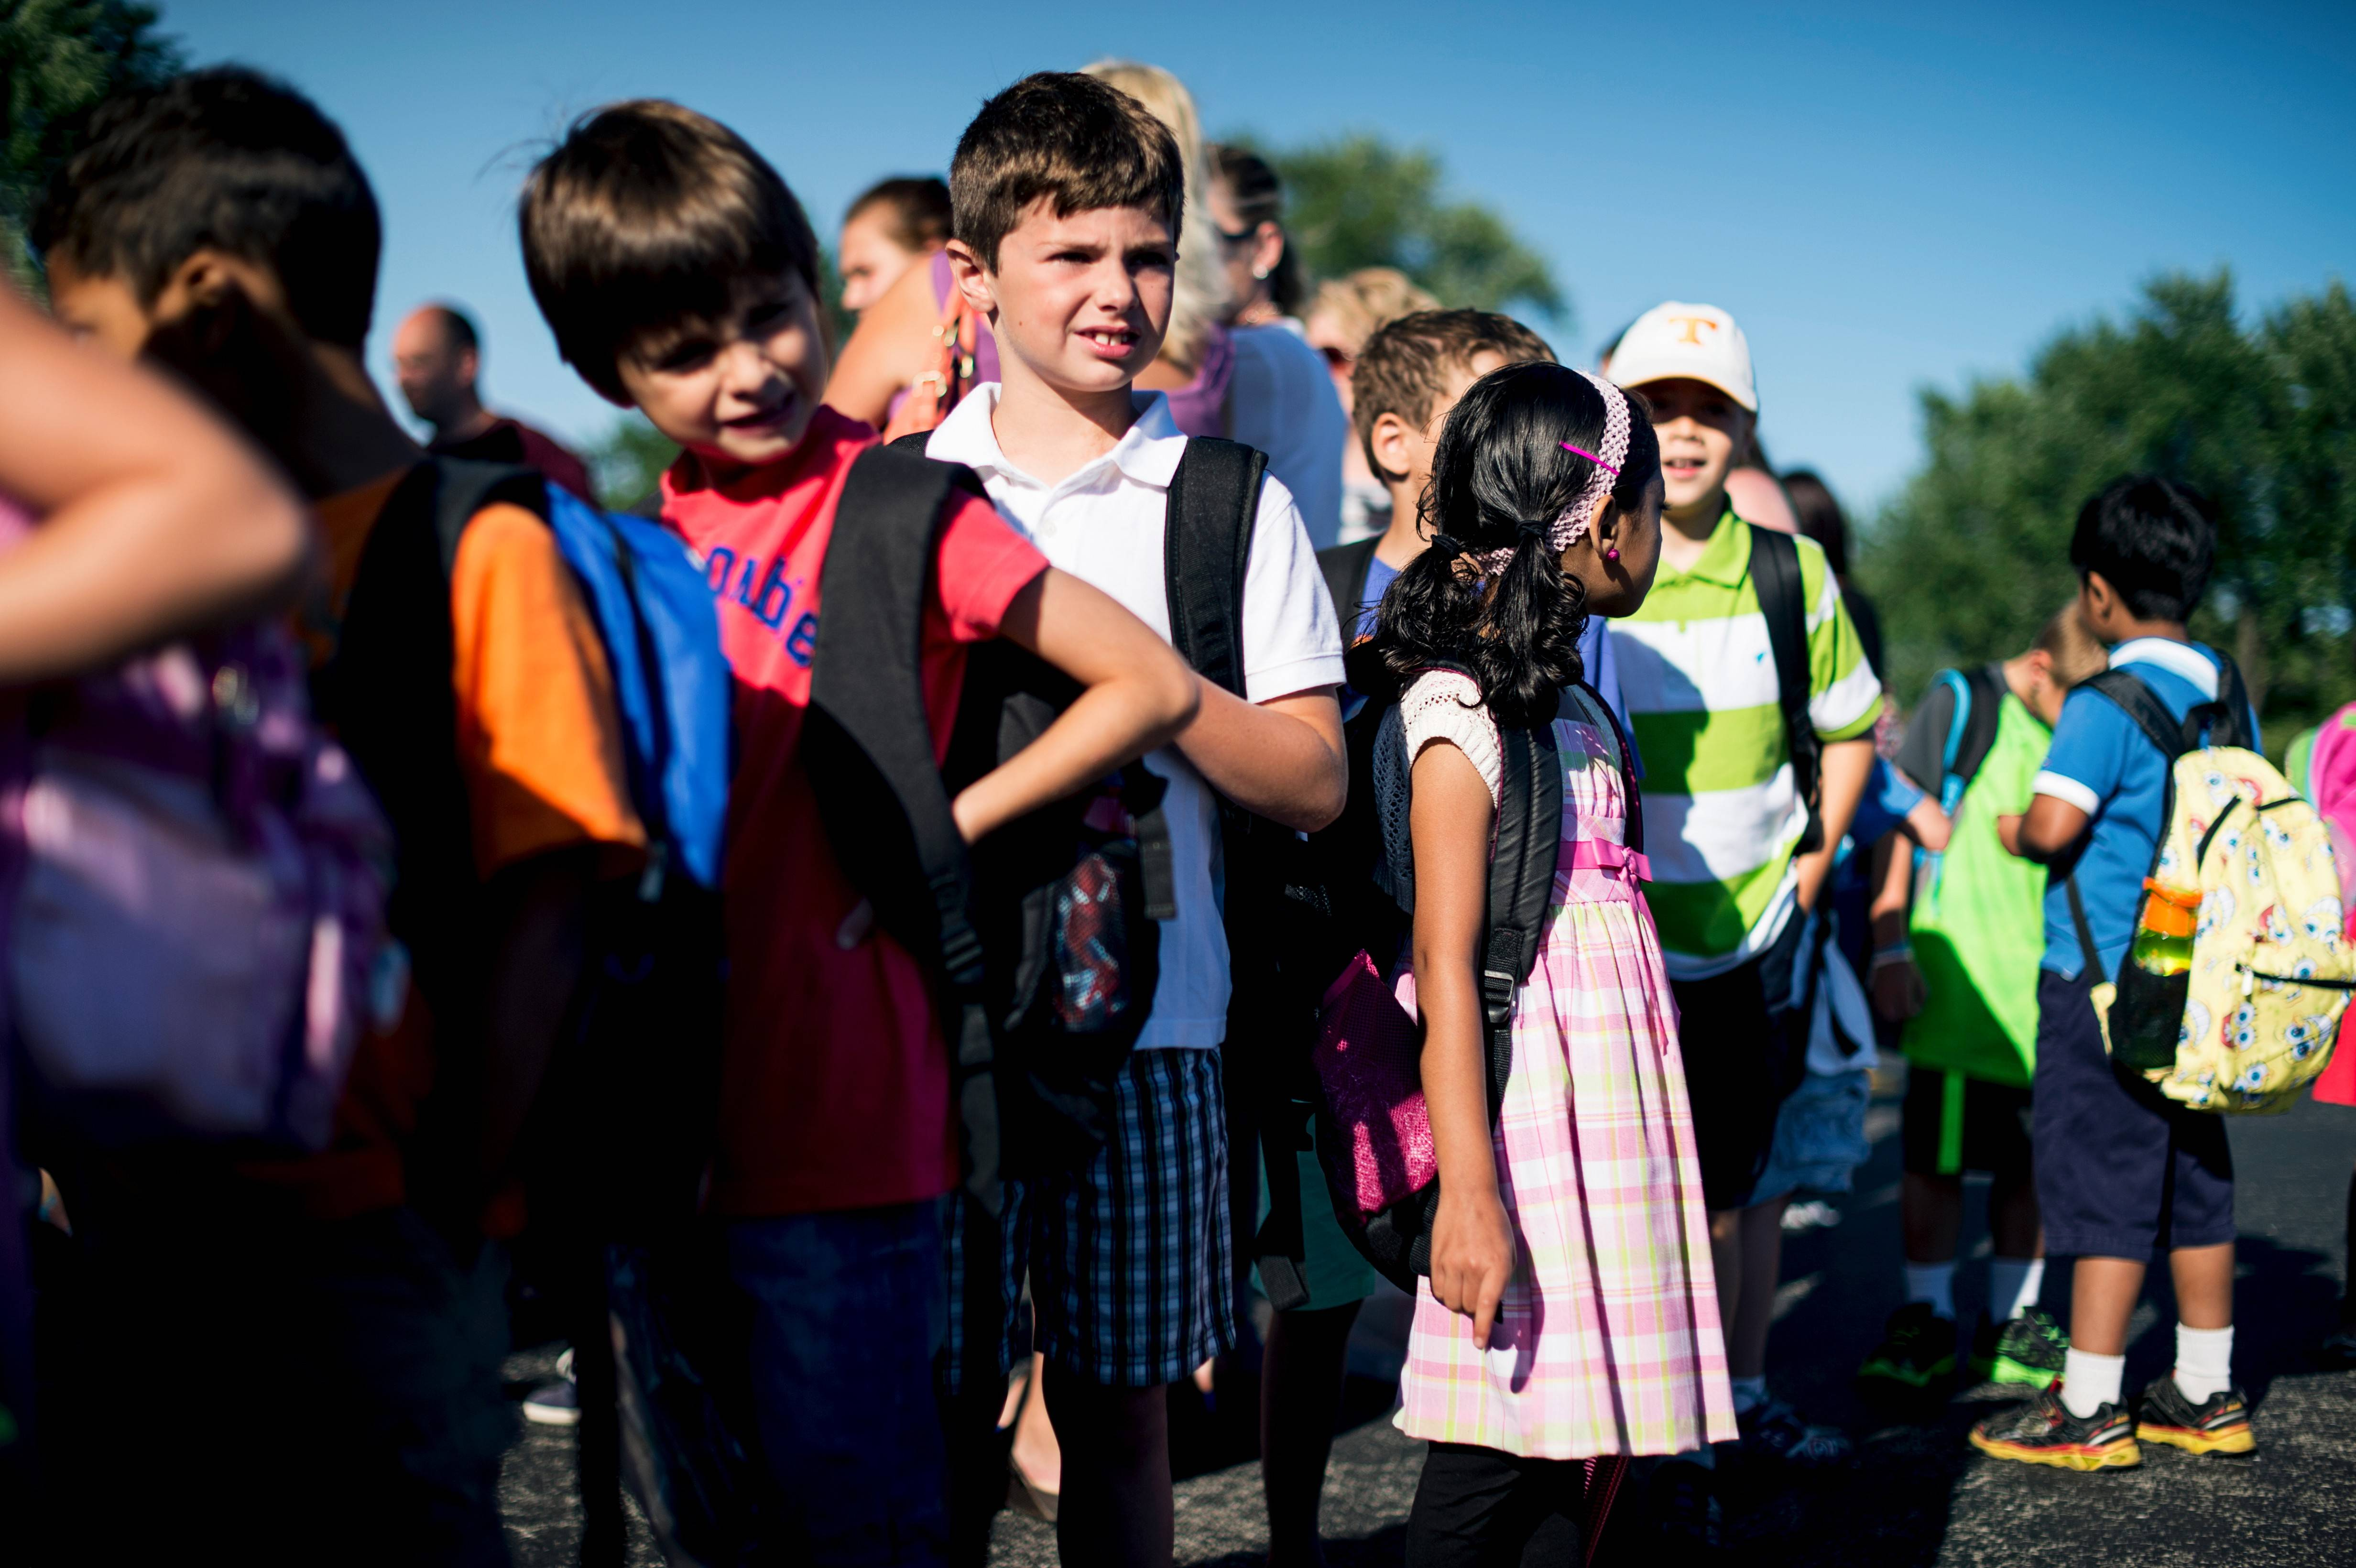 Students line up on the first day back in school at Ridge Family Center for Learning in Elk Grove Village.